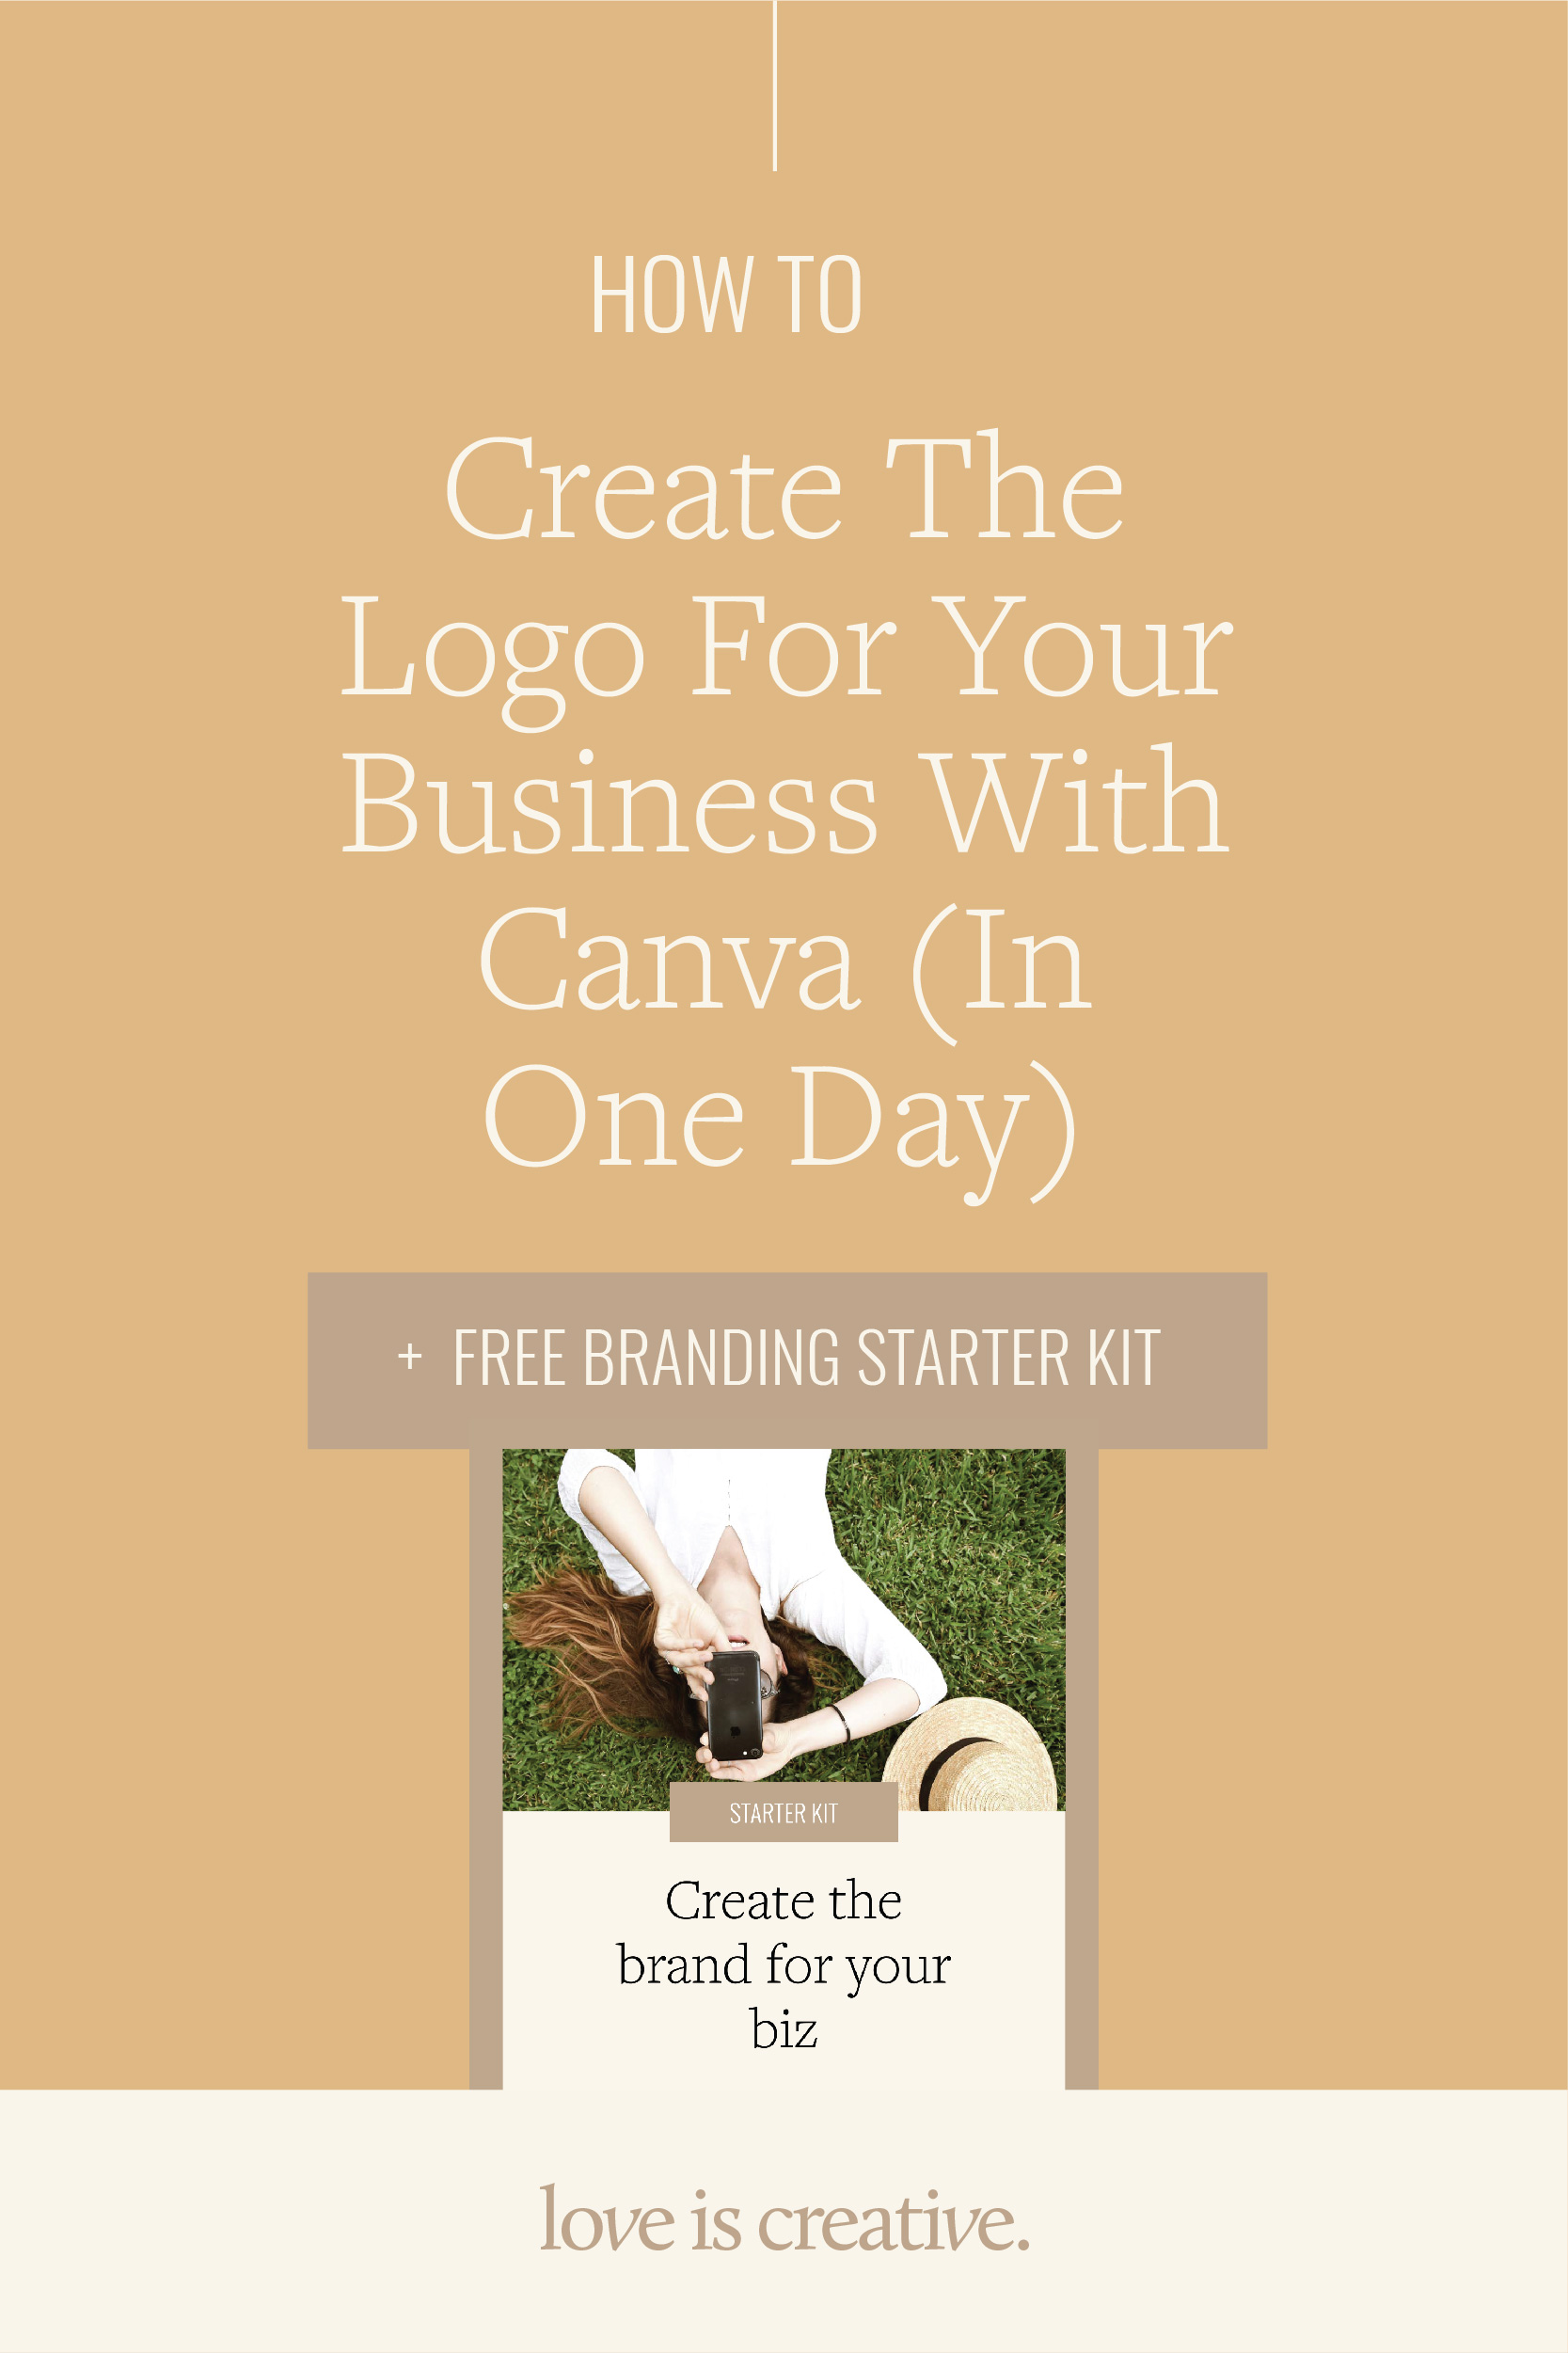 blog-graphic-how-to-create-logo-business-canva.jpg